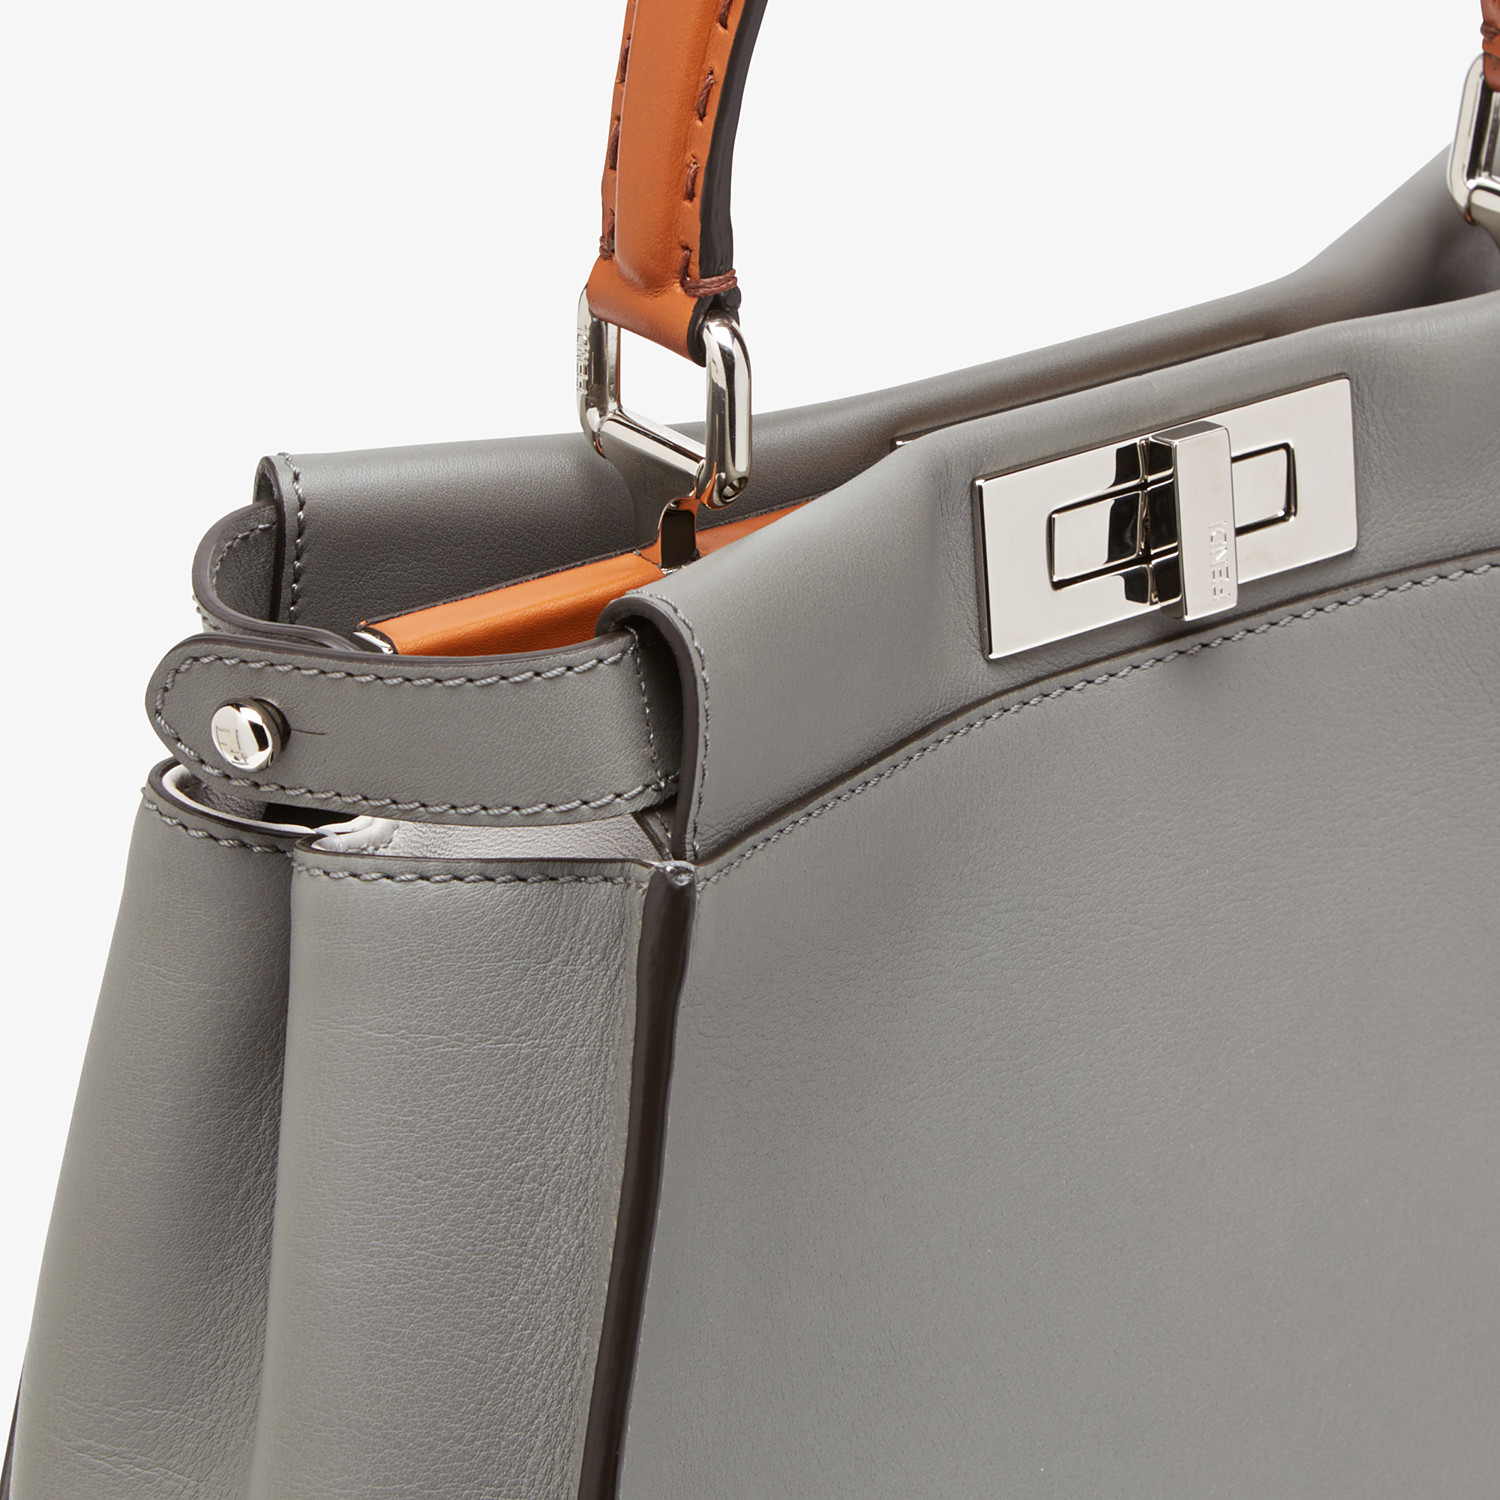 FENDI PEEKABOO ICONIC MEDIUM - Tasche aus Leder in Grau - view 6 detail